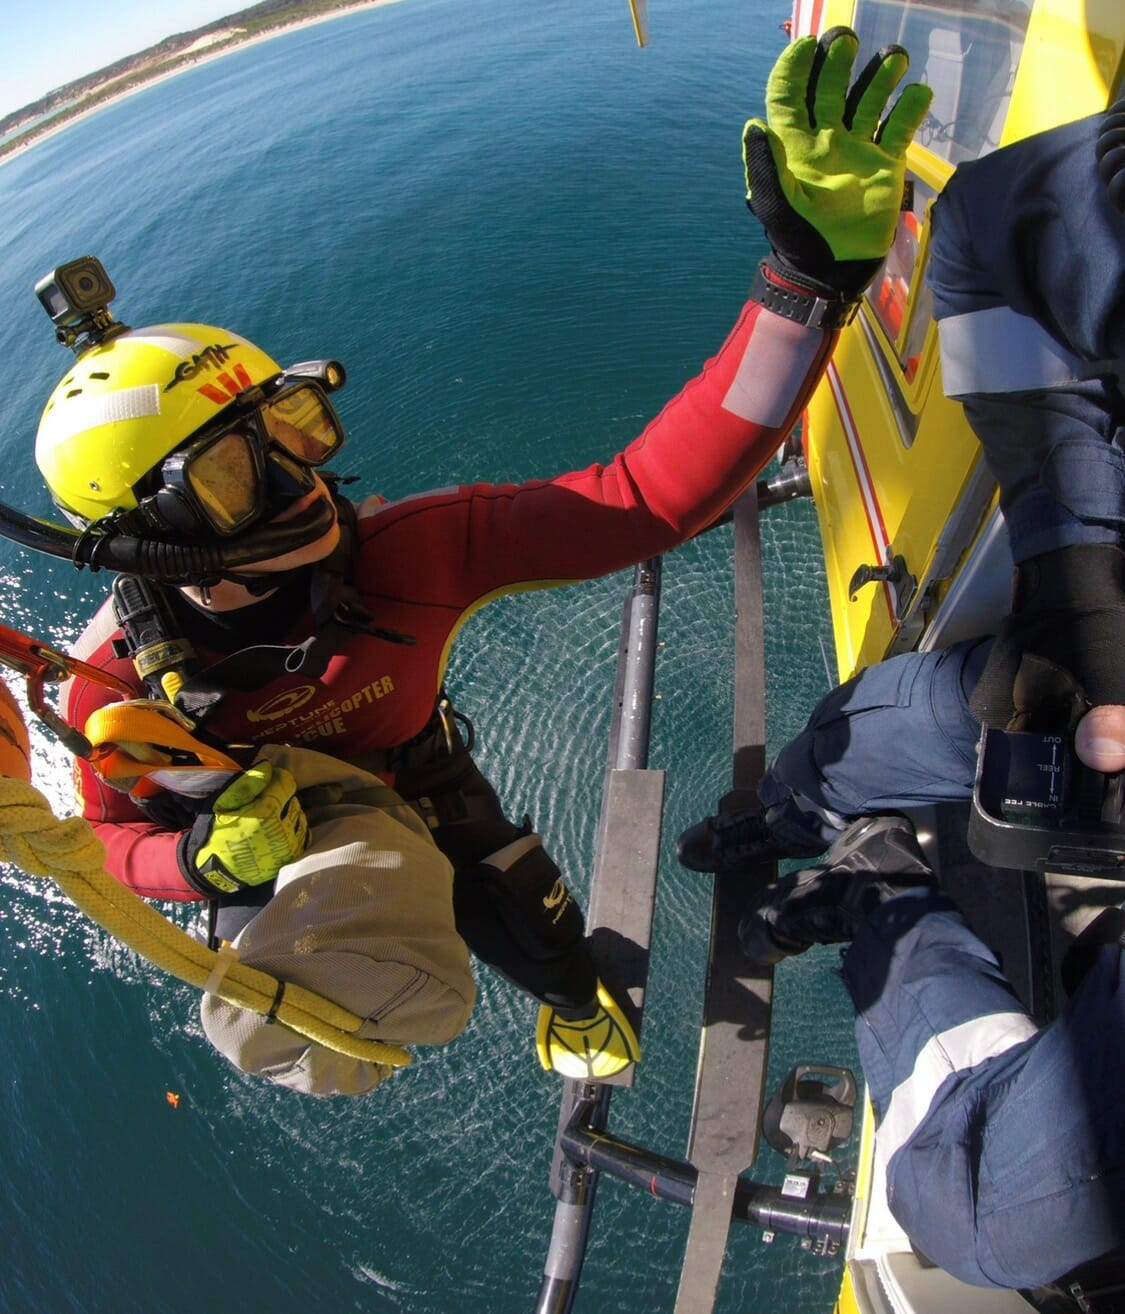 A Day in the Life of a Rescue Helicopter Crewman.